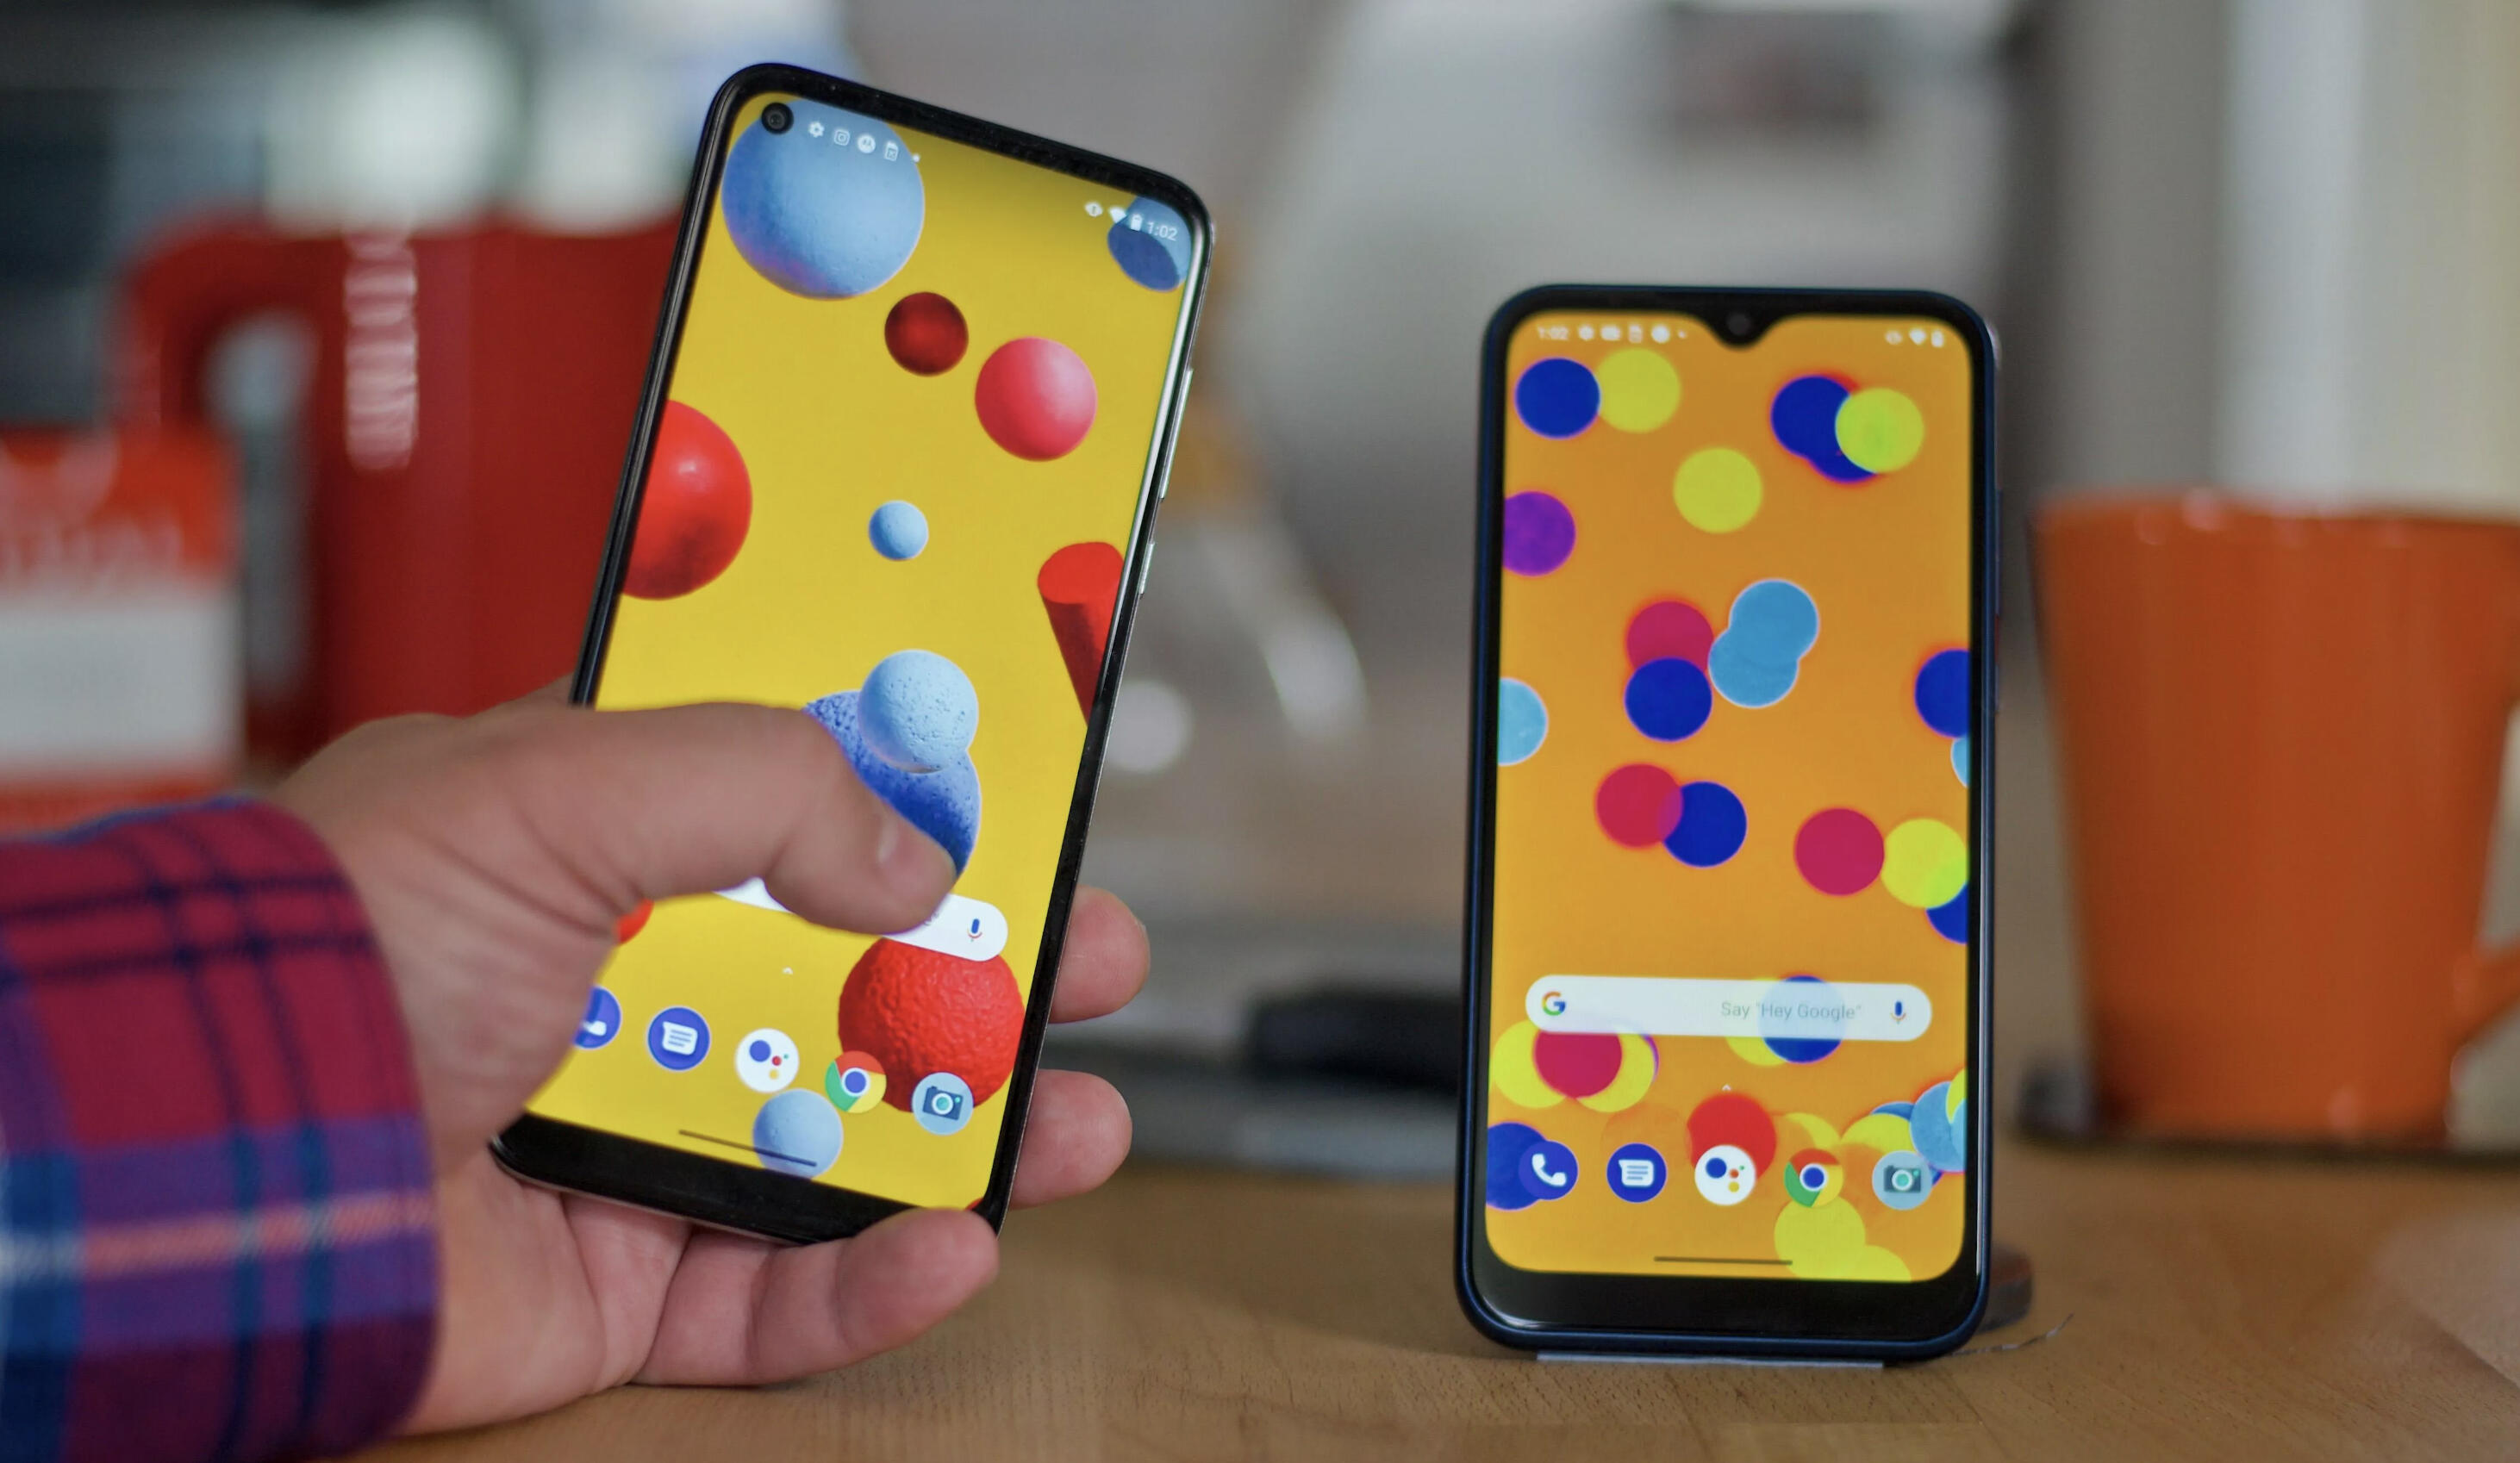 Video: The budget phone features that matter the most